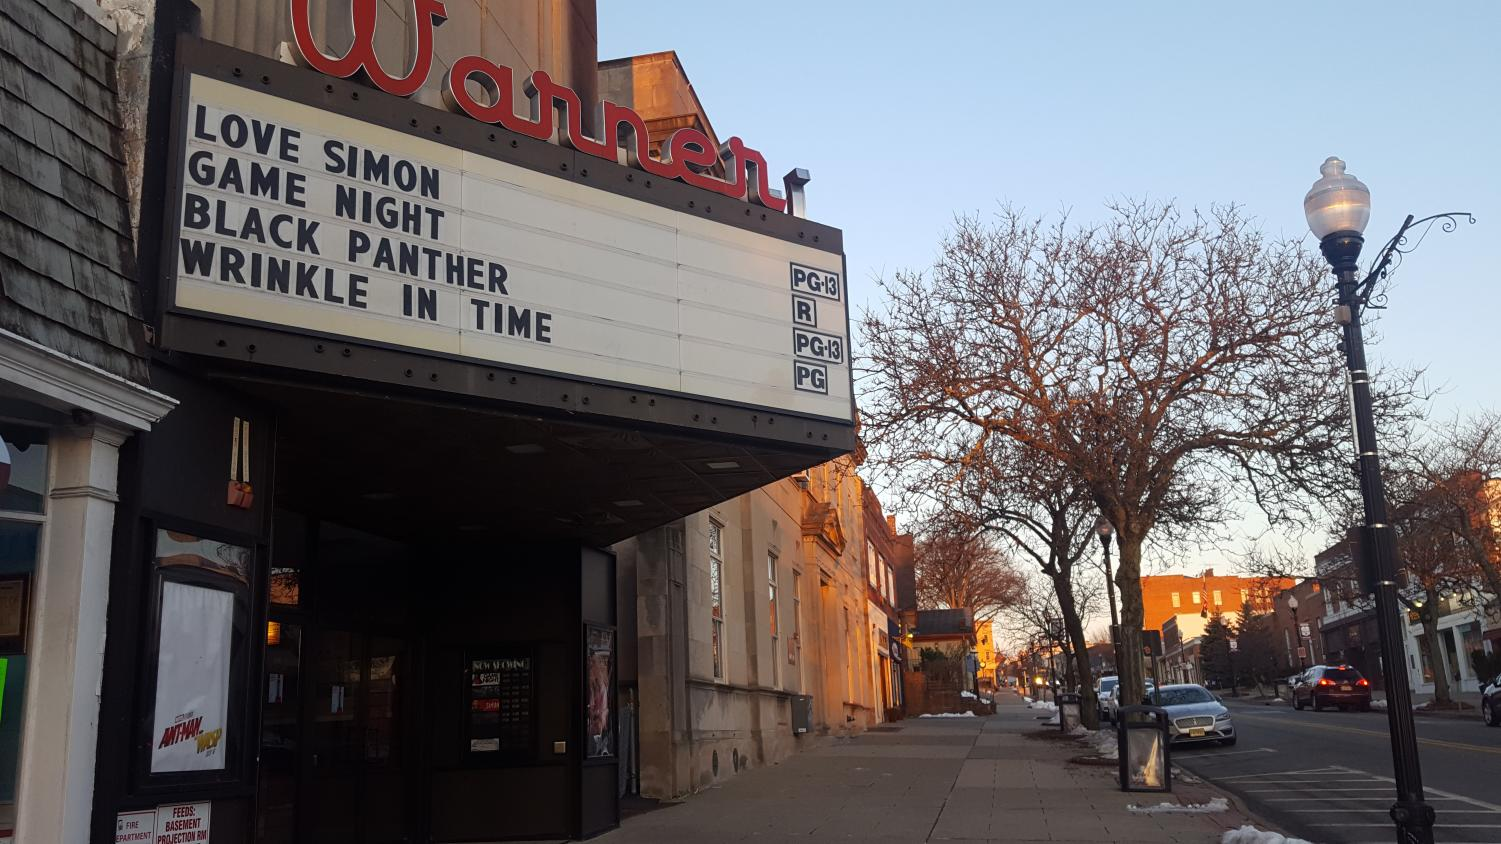 The Black Panther movie is currently playing at the nearby Bow Tie Warner Theater in Ridgewood. There are several showing starting at 11:30 a.m. this weekend.